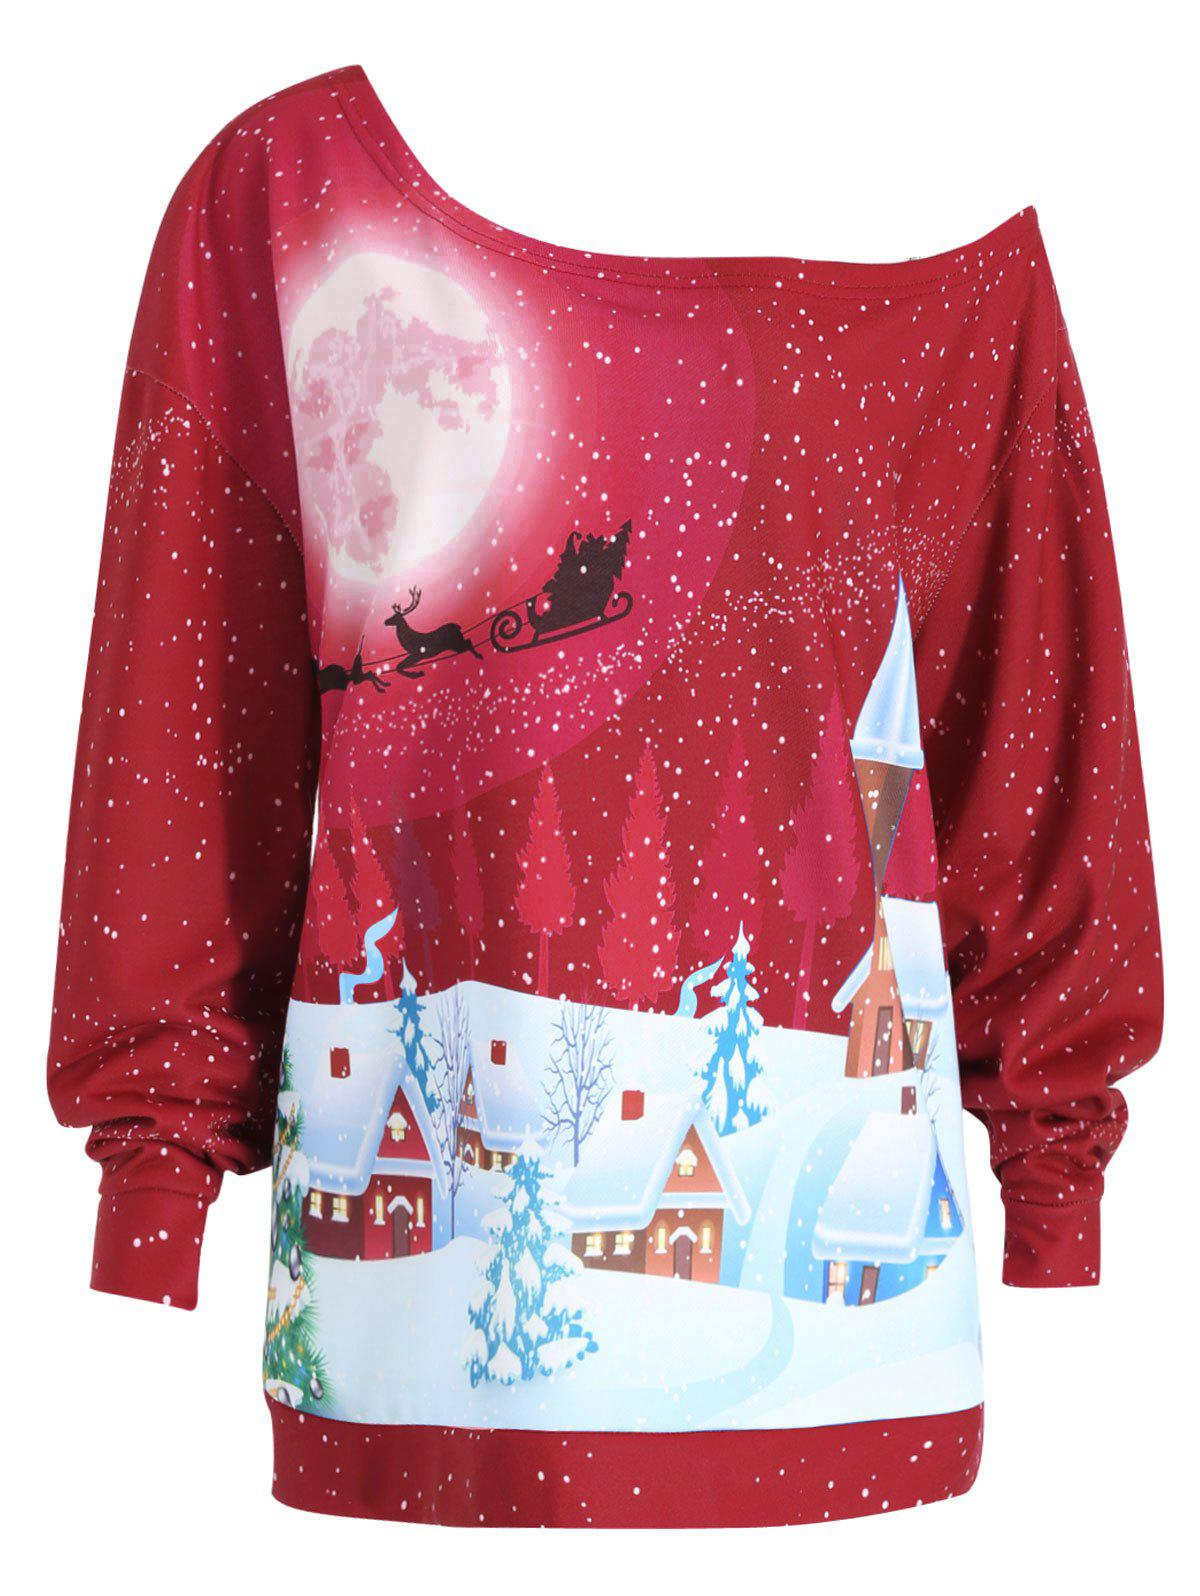 Christmas Evening Printed Plus Size Skew Neck SweatshirtWOMEN<br><br>Size: XL; Color: BRIGHT RED; Material: Cotton Blend,Polyester; Shirt Length: Regular; Sleeve Length: Full; Style: Fashion; Pattern Style: Print; Season: Fall,Winter; Weight: 0.4100kg; Package Contents: 1 x Sweatshirt;